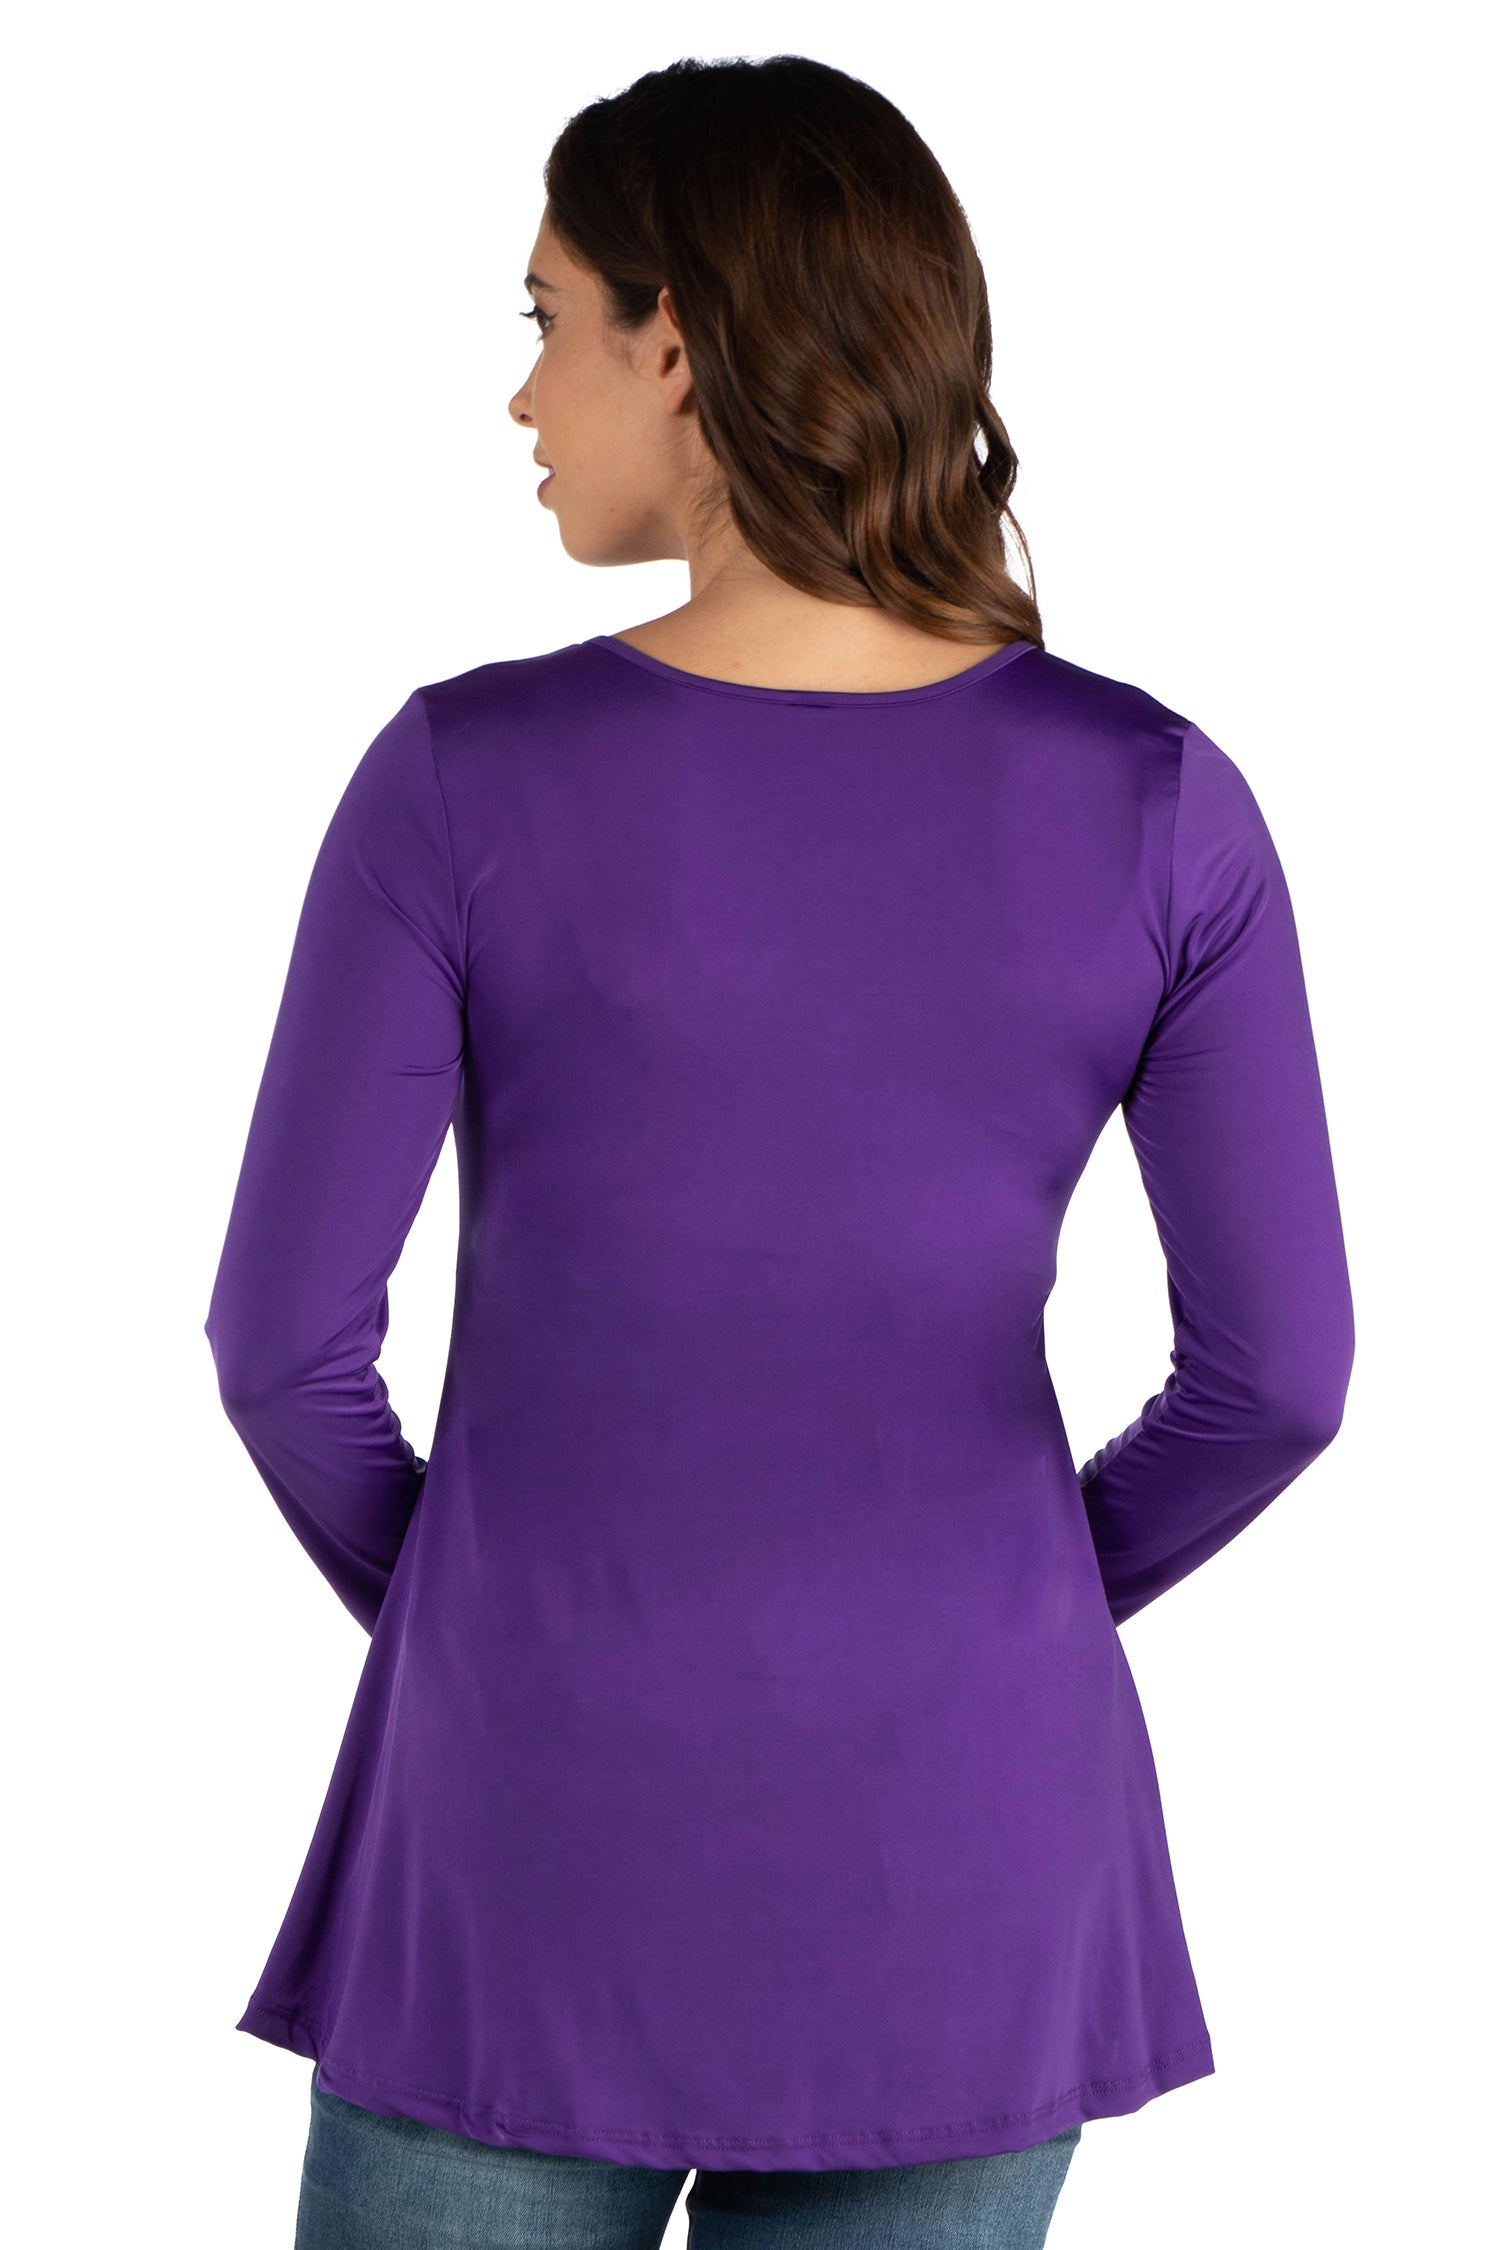 24seven Comfort Apparel Flared Long Sleeve Henley Maternity Top-TOPS-24Seven Comfort Apparel-WINE-S-24/7 Comfort Apparel